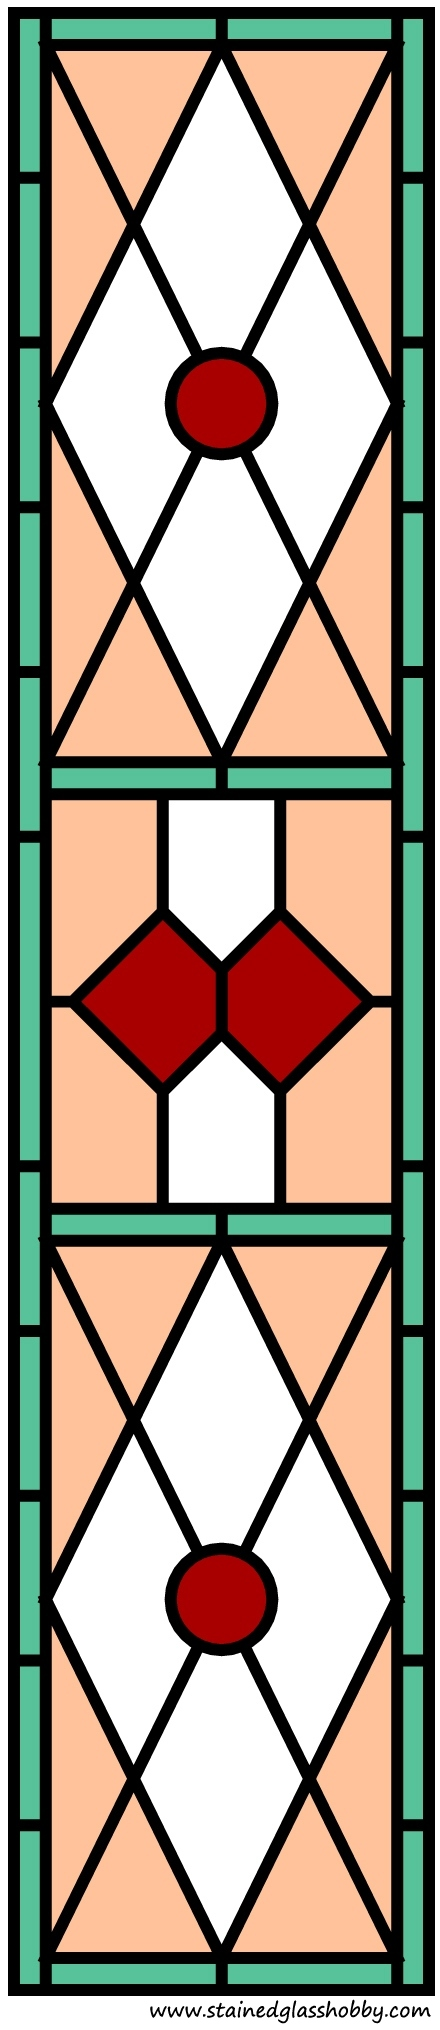 Stained glass door panel color pattern